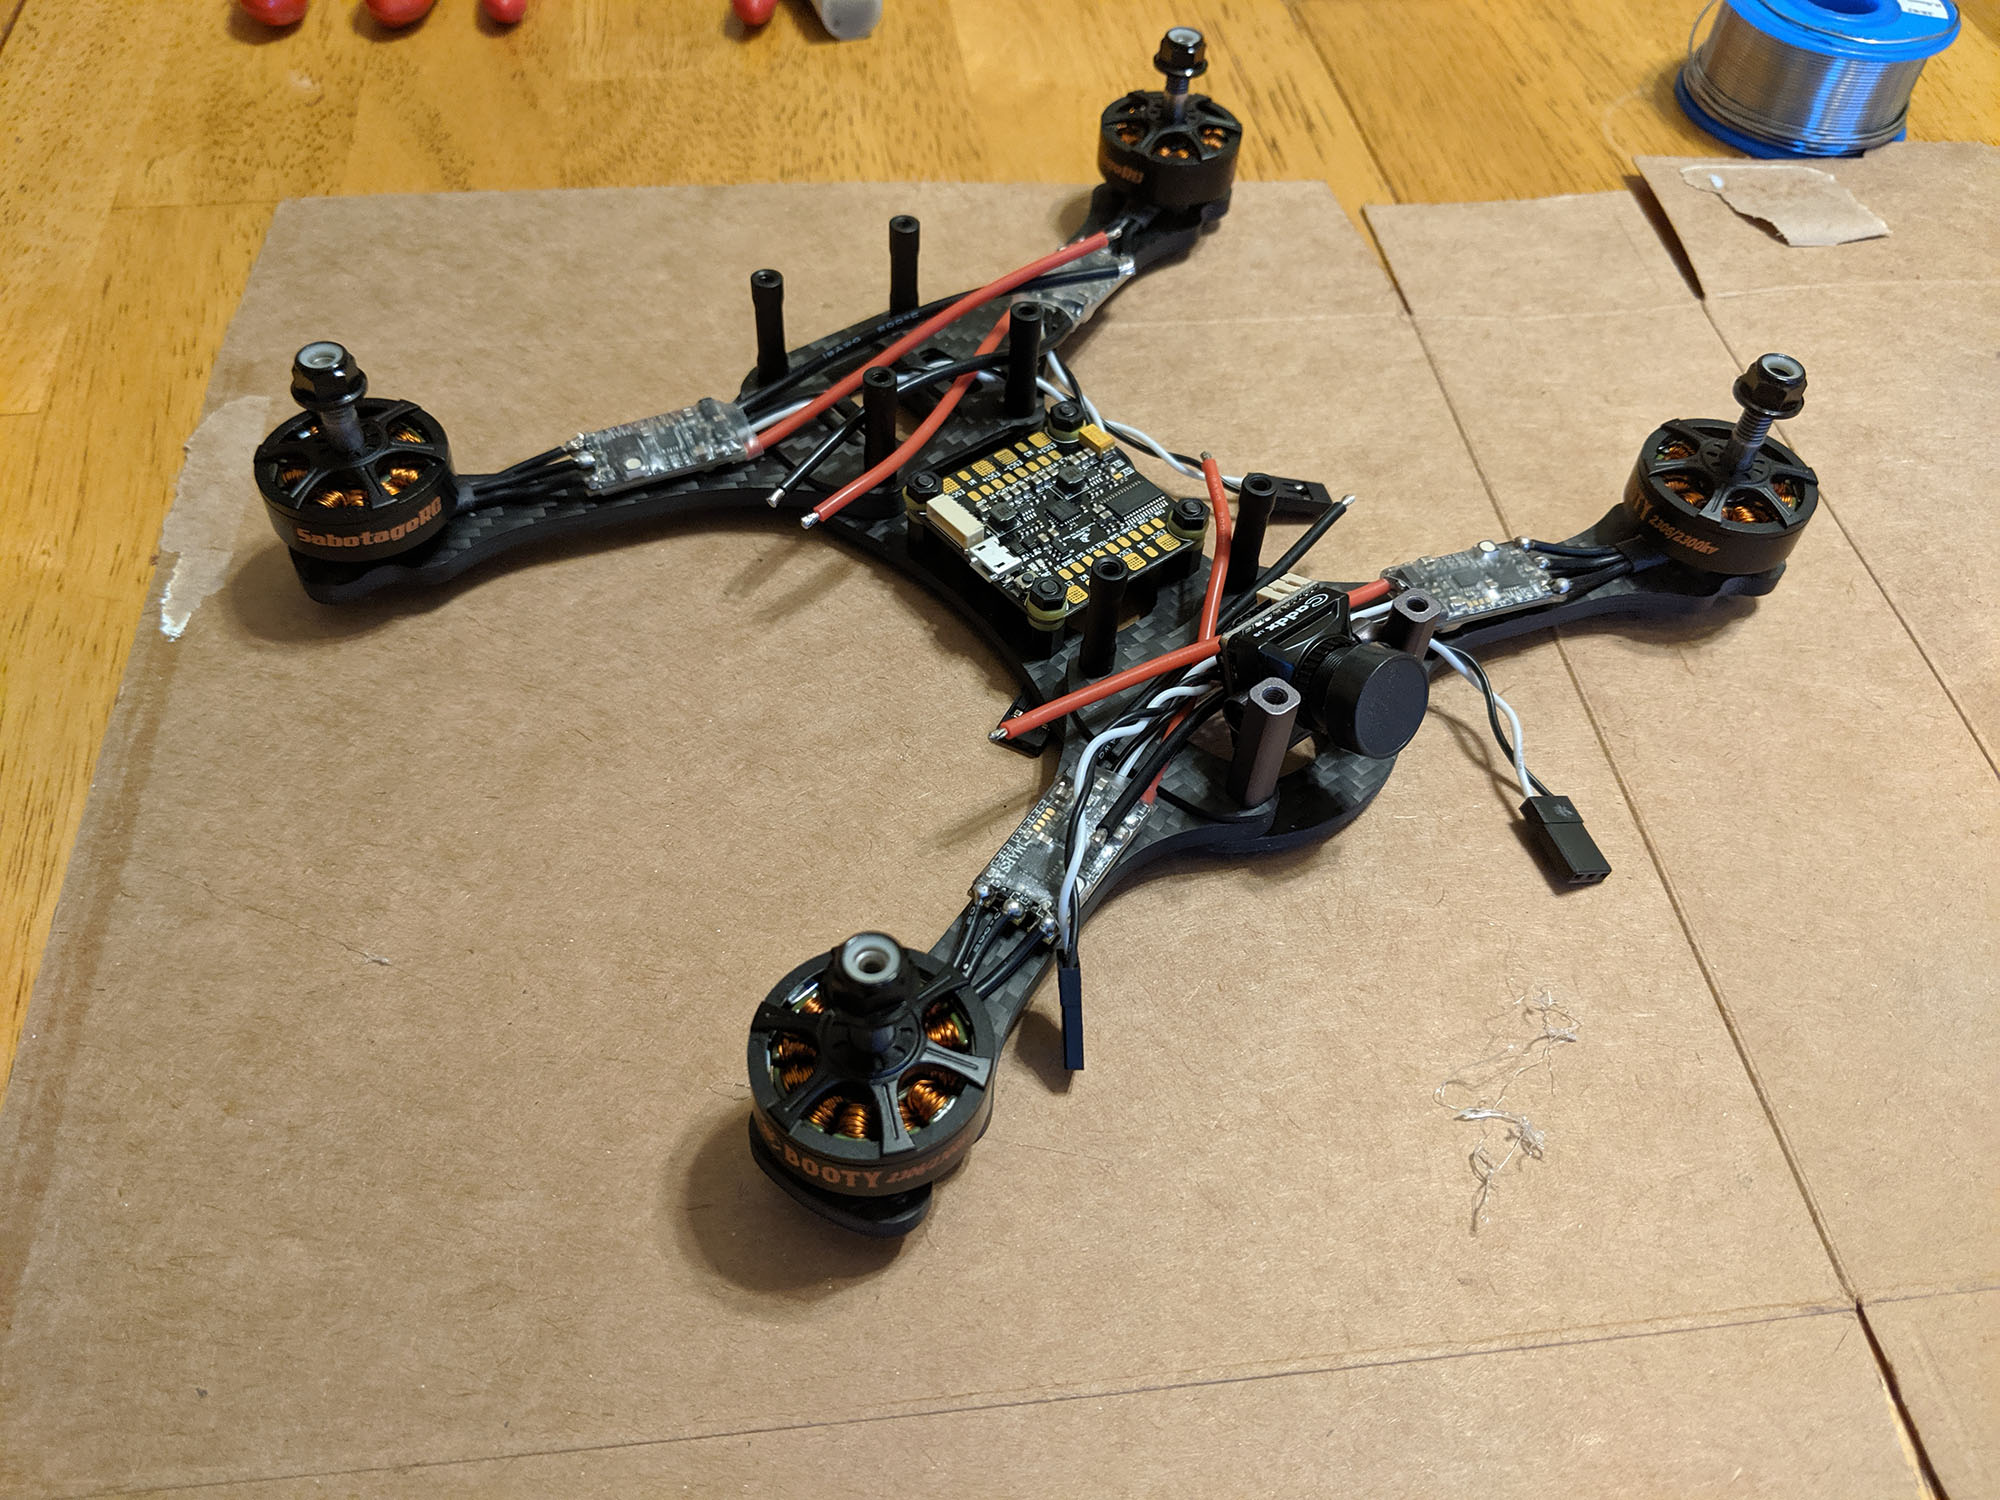 Remote ID - Image of partially-assembled FPV drone